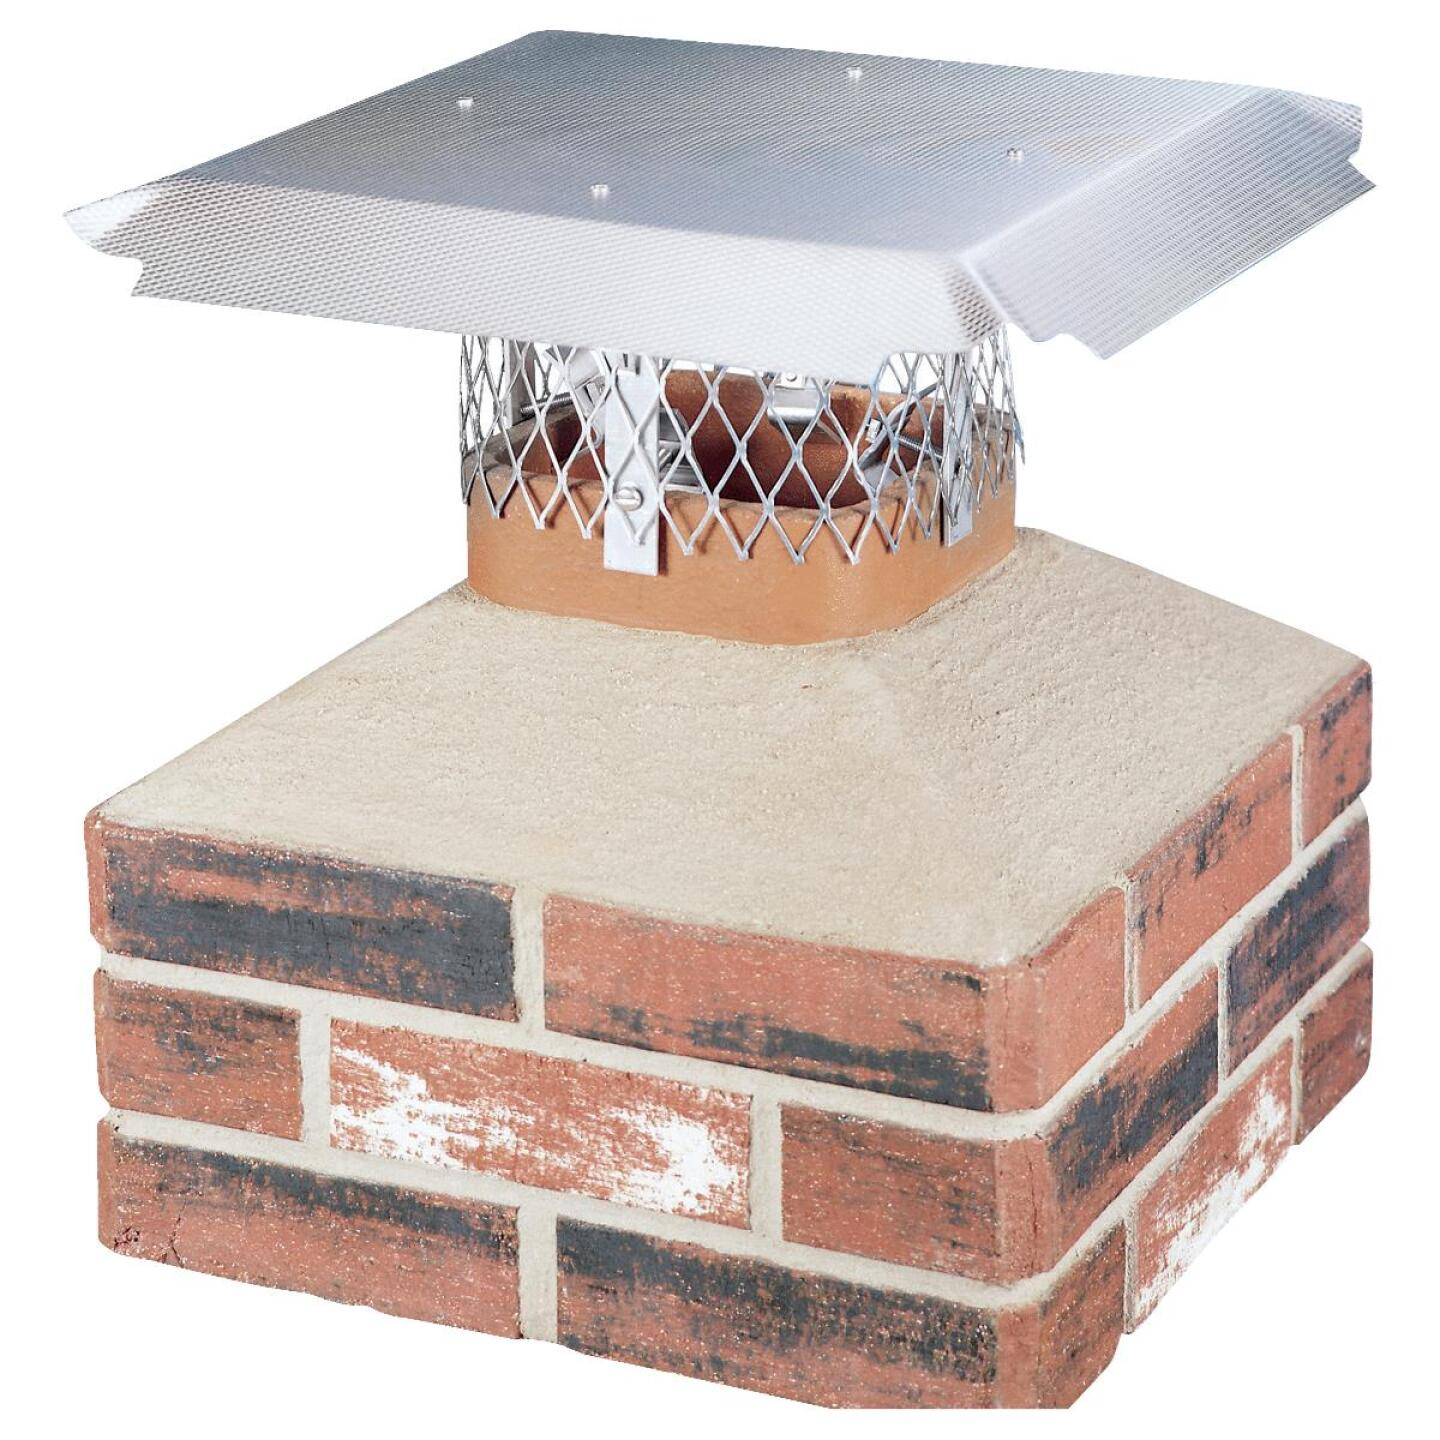 HY-C DuroShield Multi-Fit Aluminum Chimney Cap for Large Flue Image 1